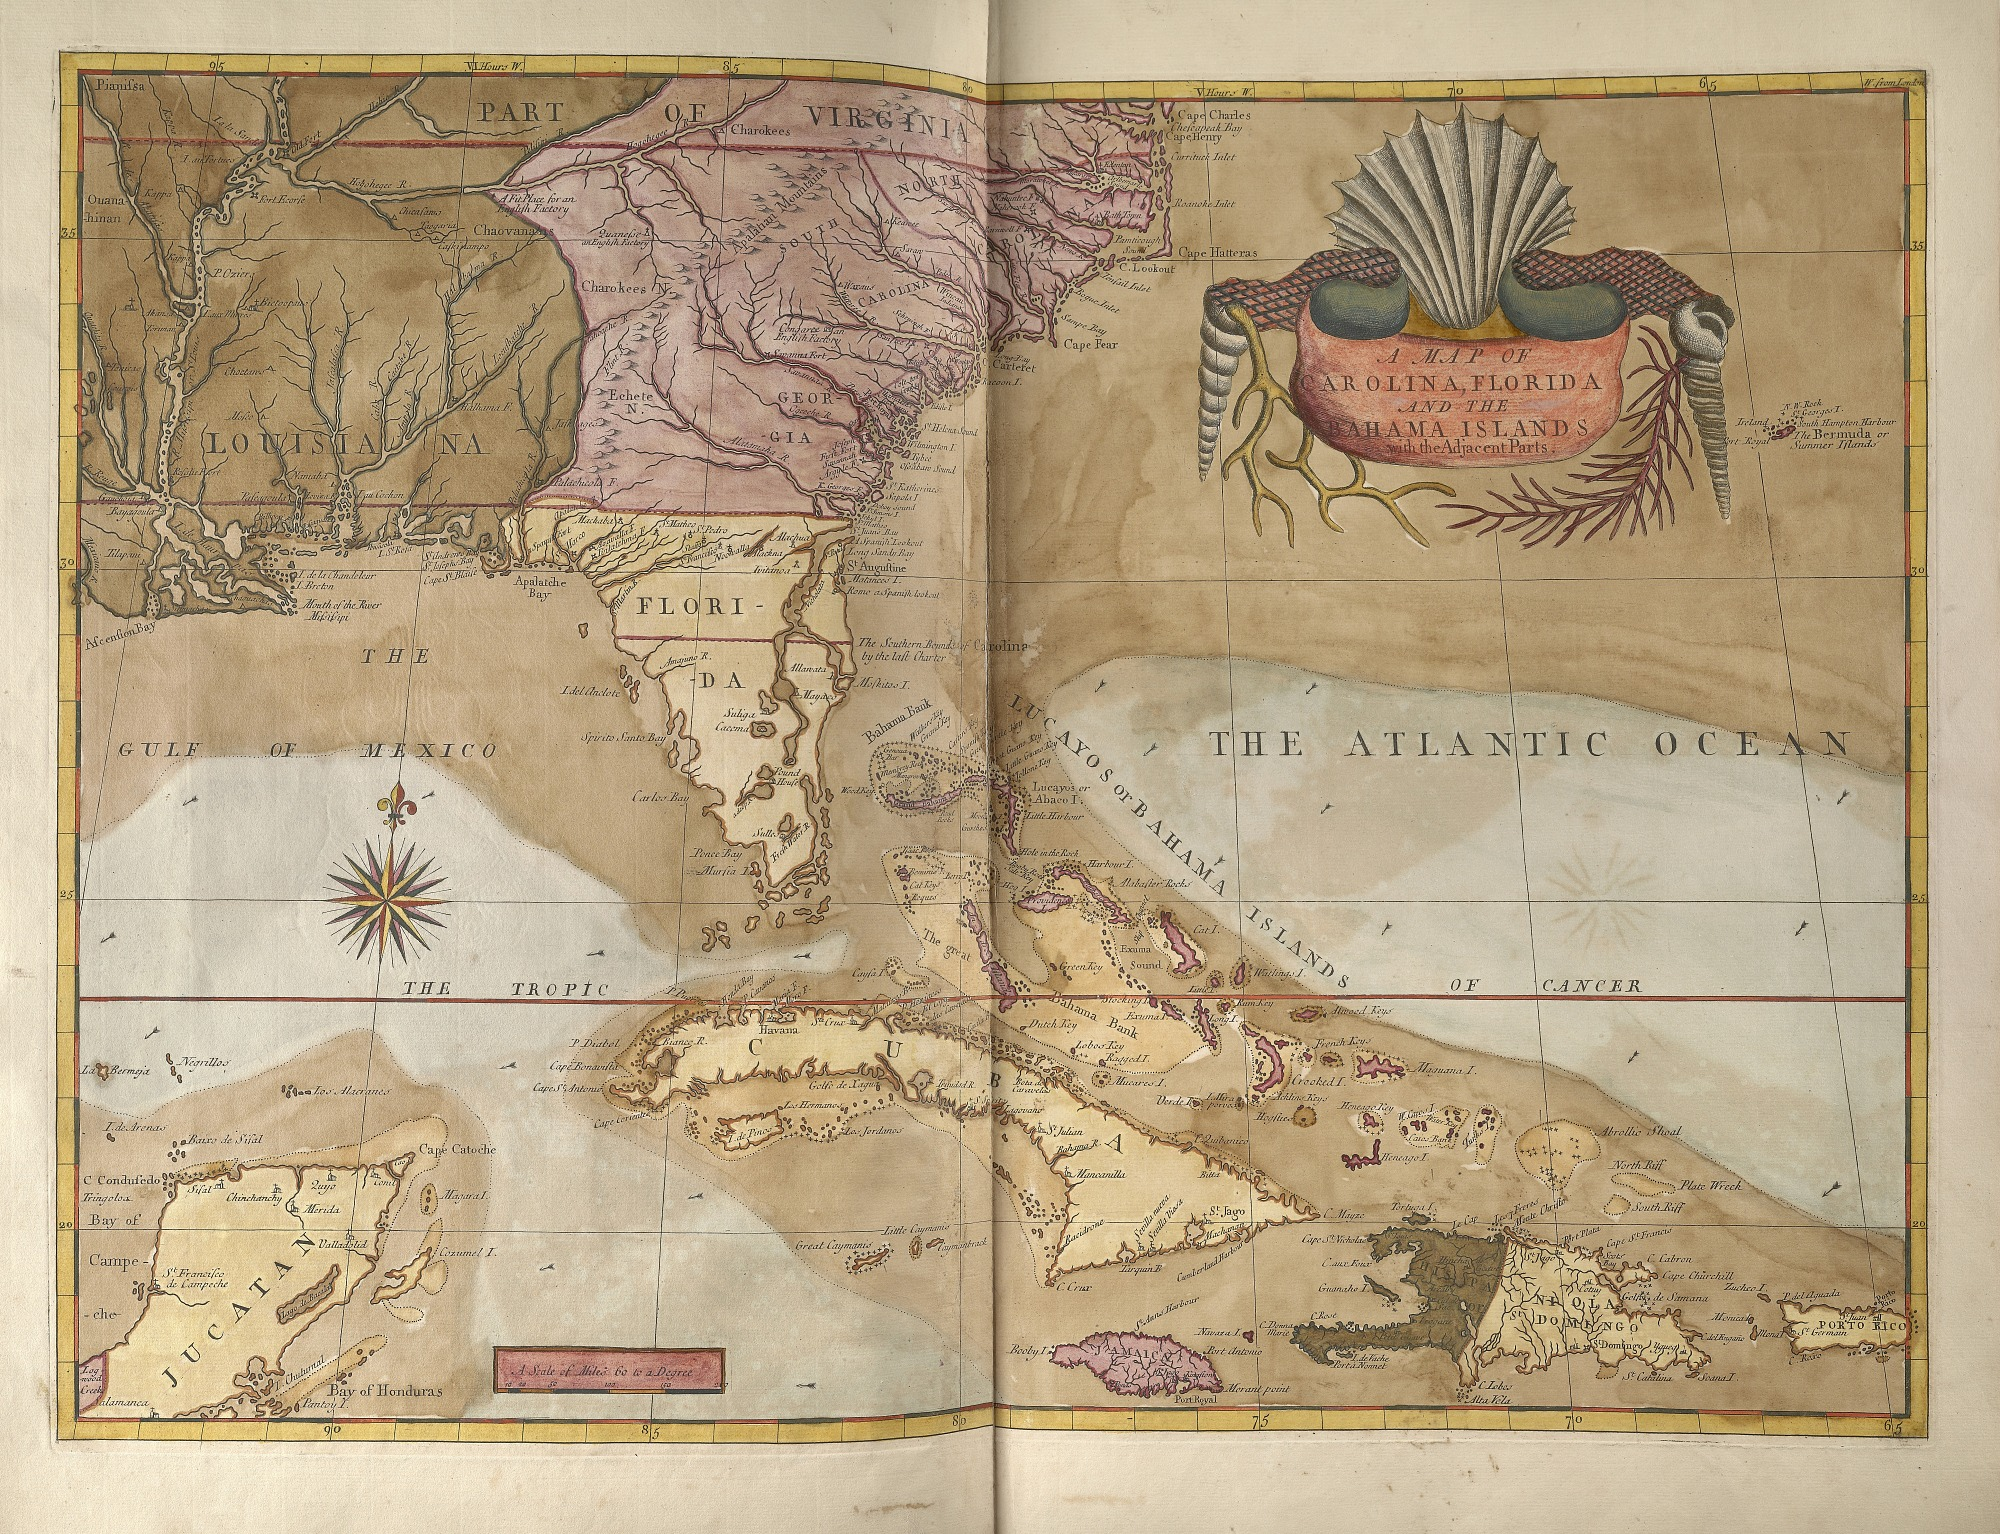 Map from Mark Catesby, The Natural History of Carolina, Florida and the Bahama Islands